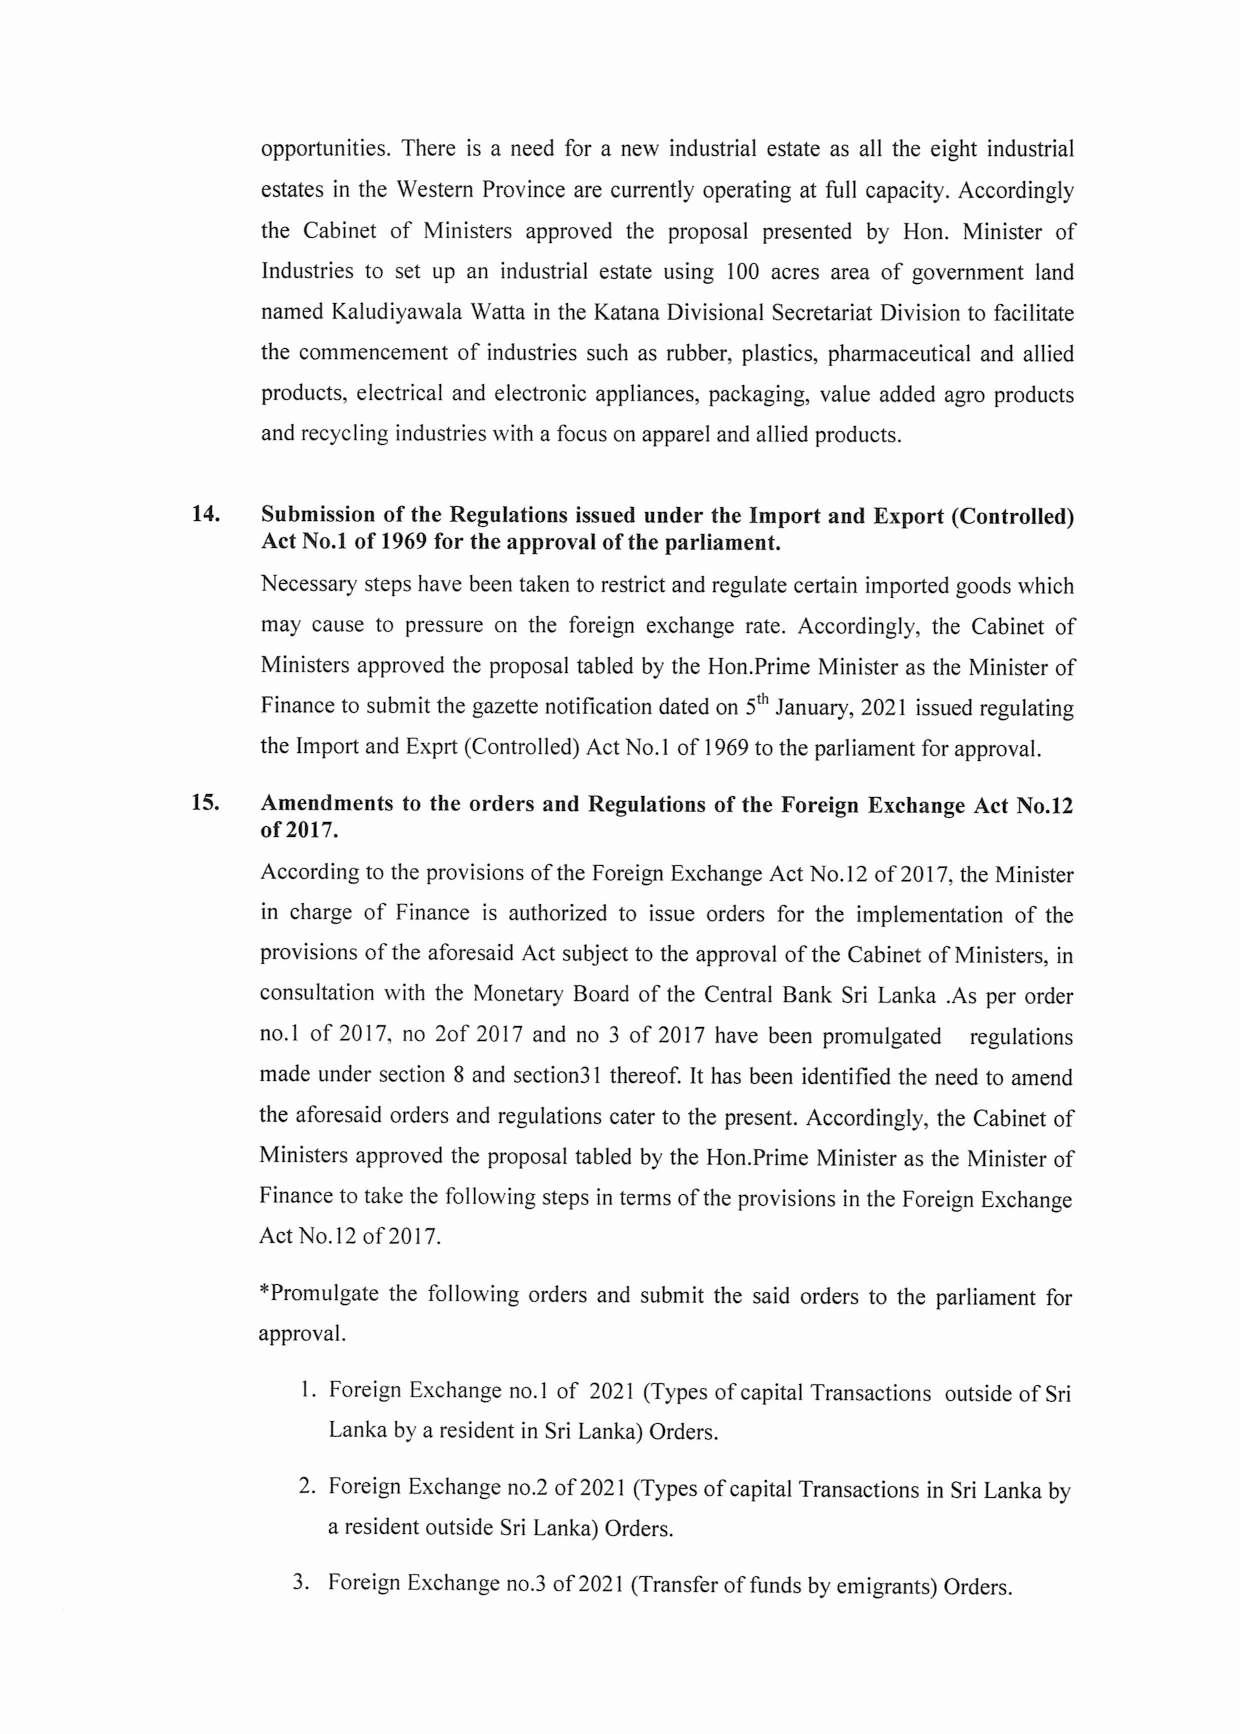 Cabinet Decision on 25.01.2021 English page 006